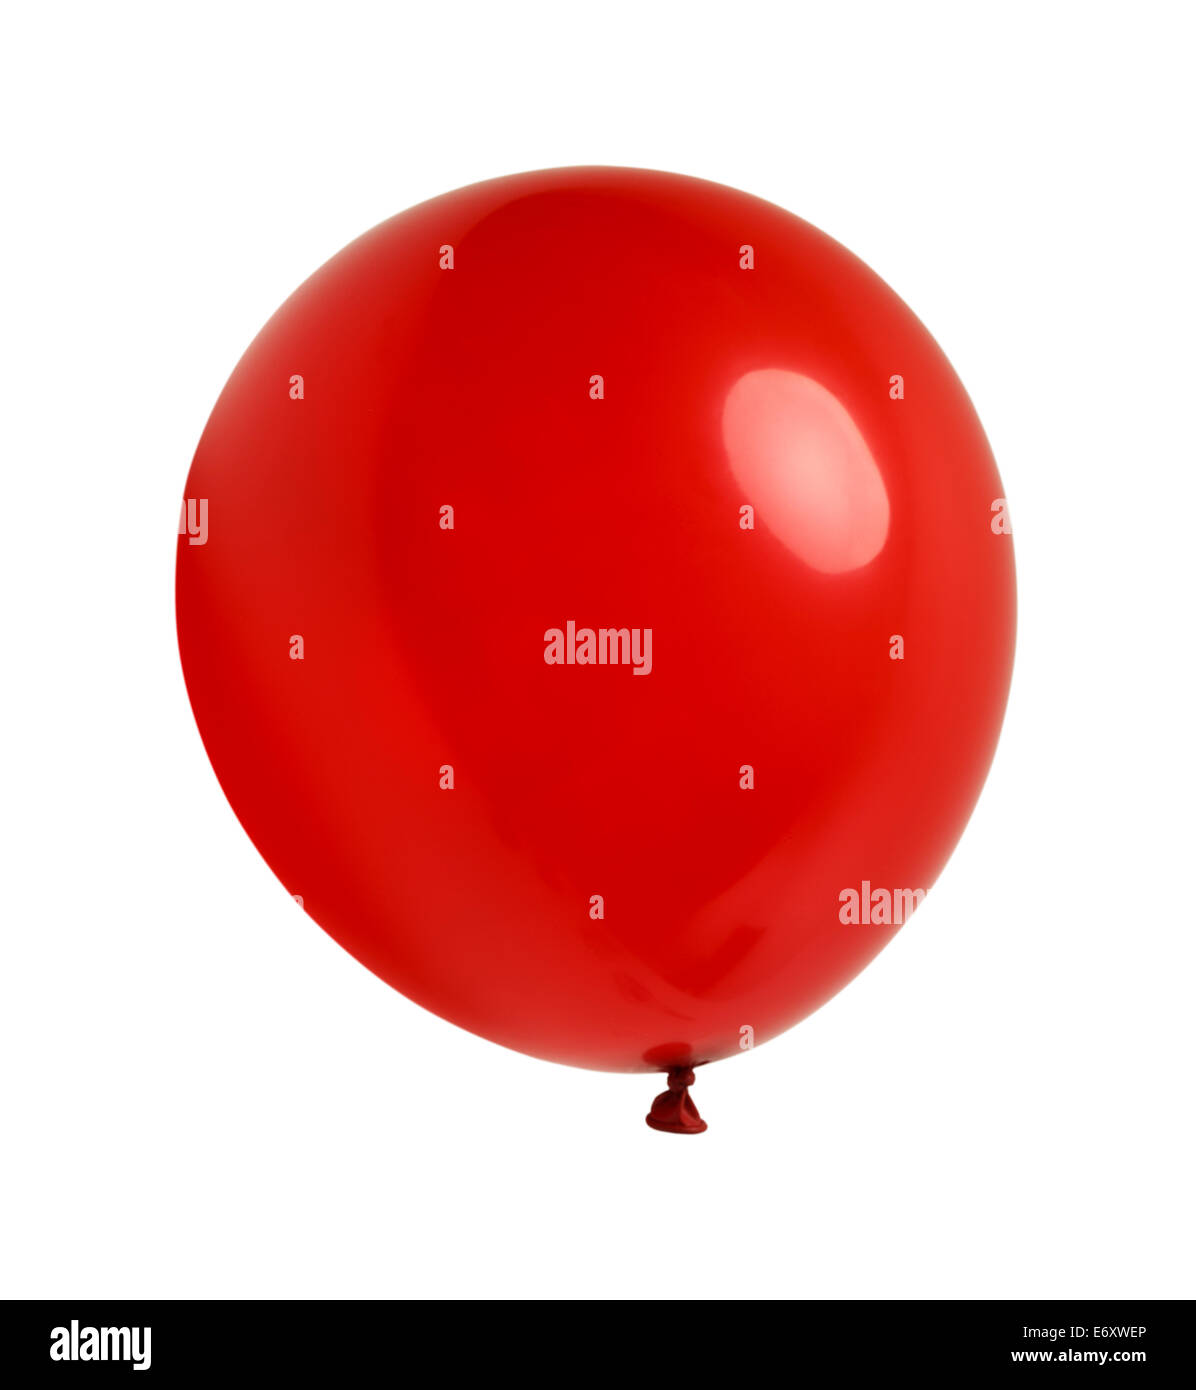 Latex Balloon Floating and Isolated on White Background. - Stock Image